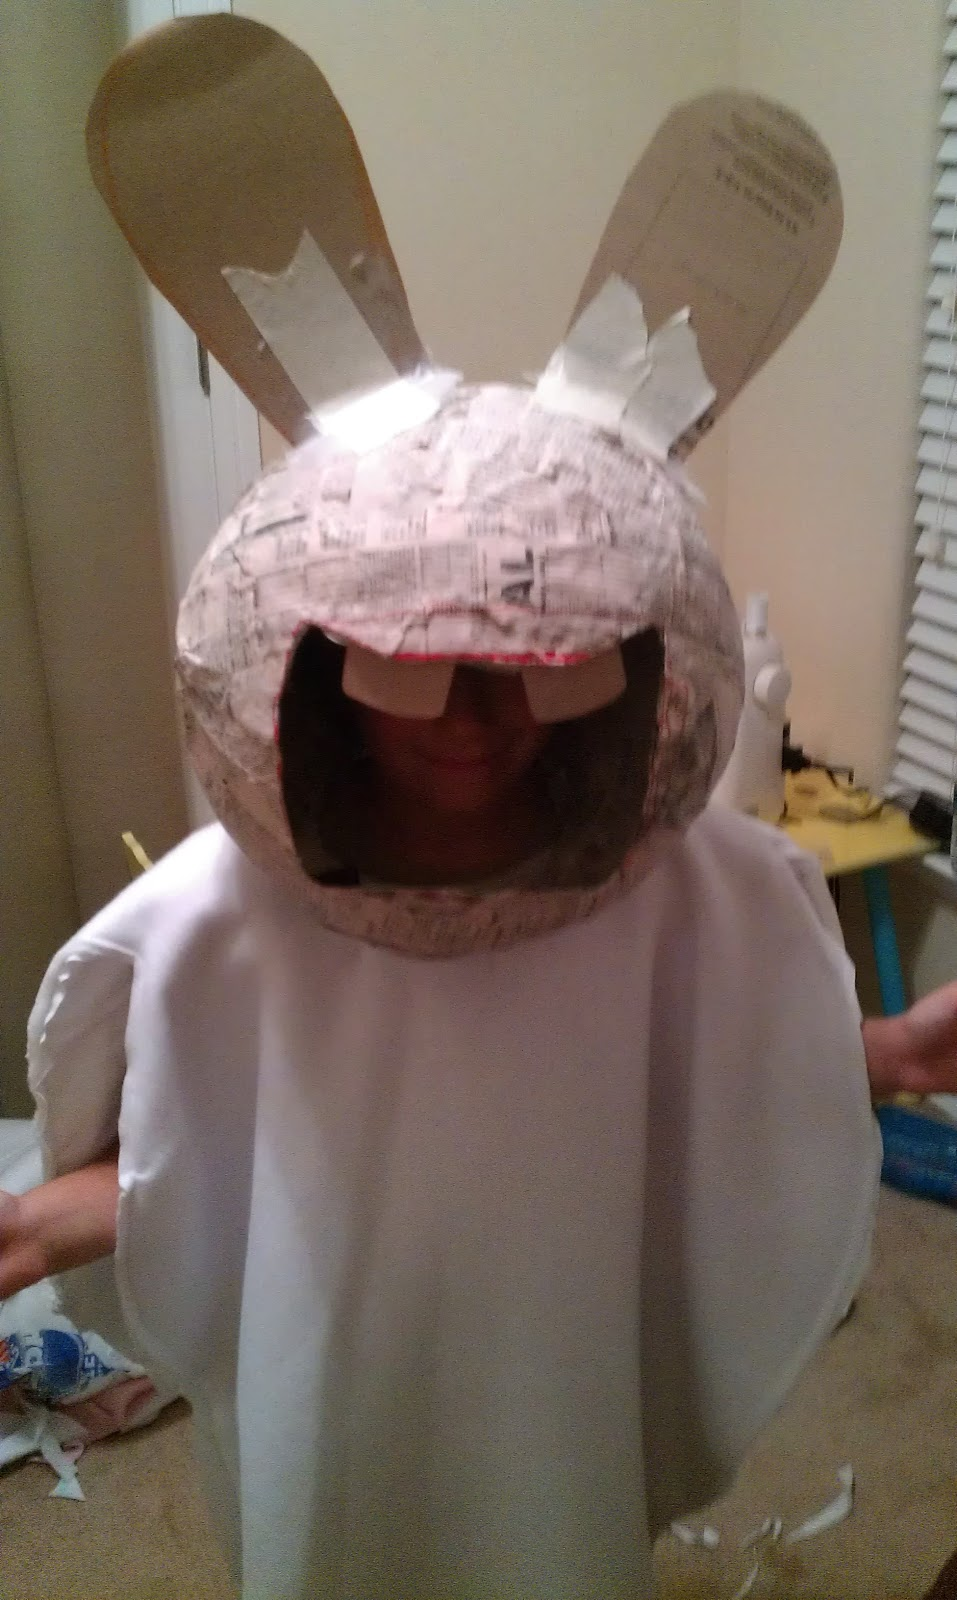 the boychilds raving rabbid costume - Raving Rabbids Halloween Costume